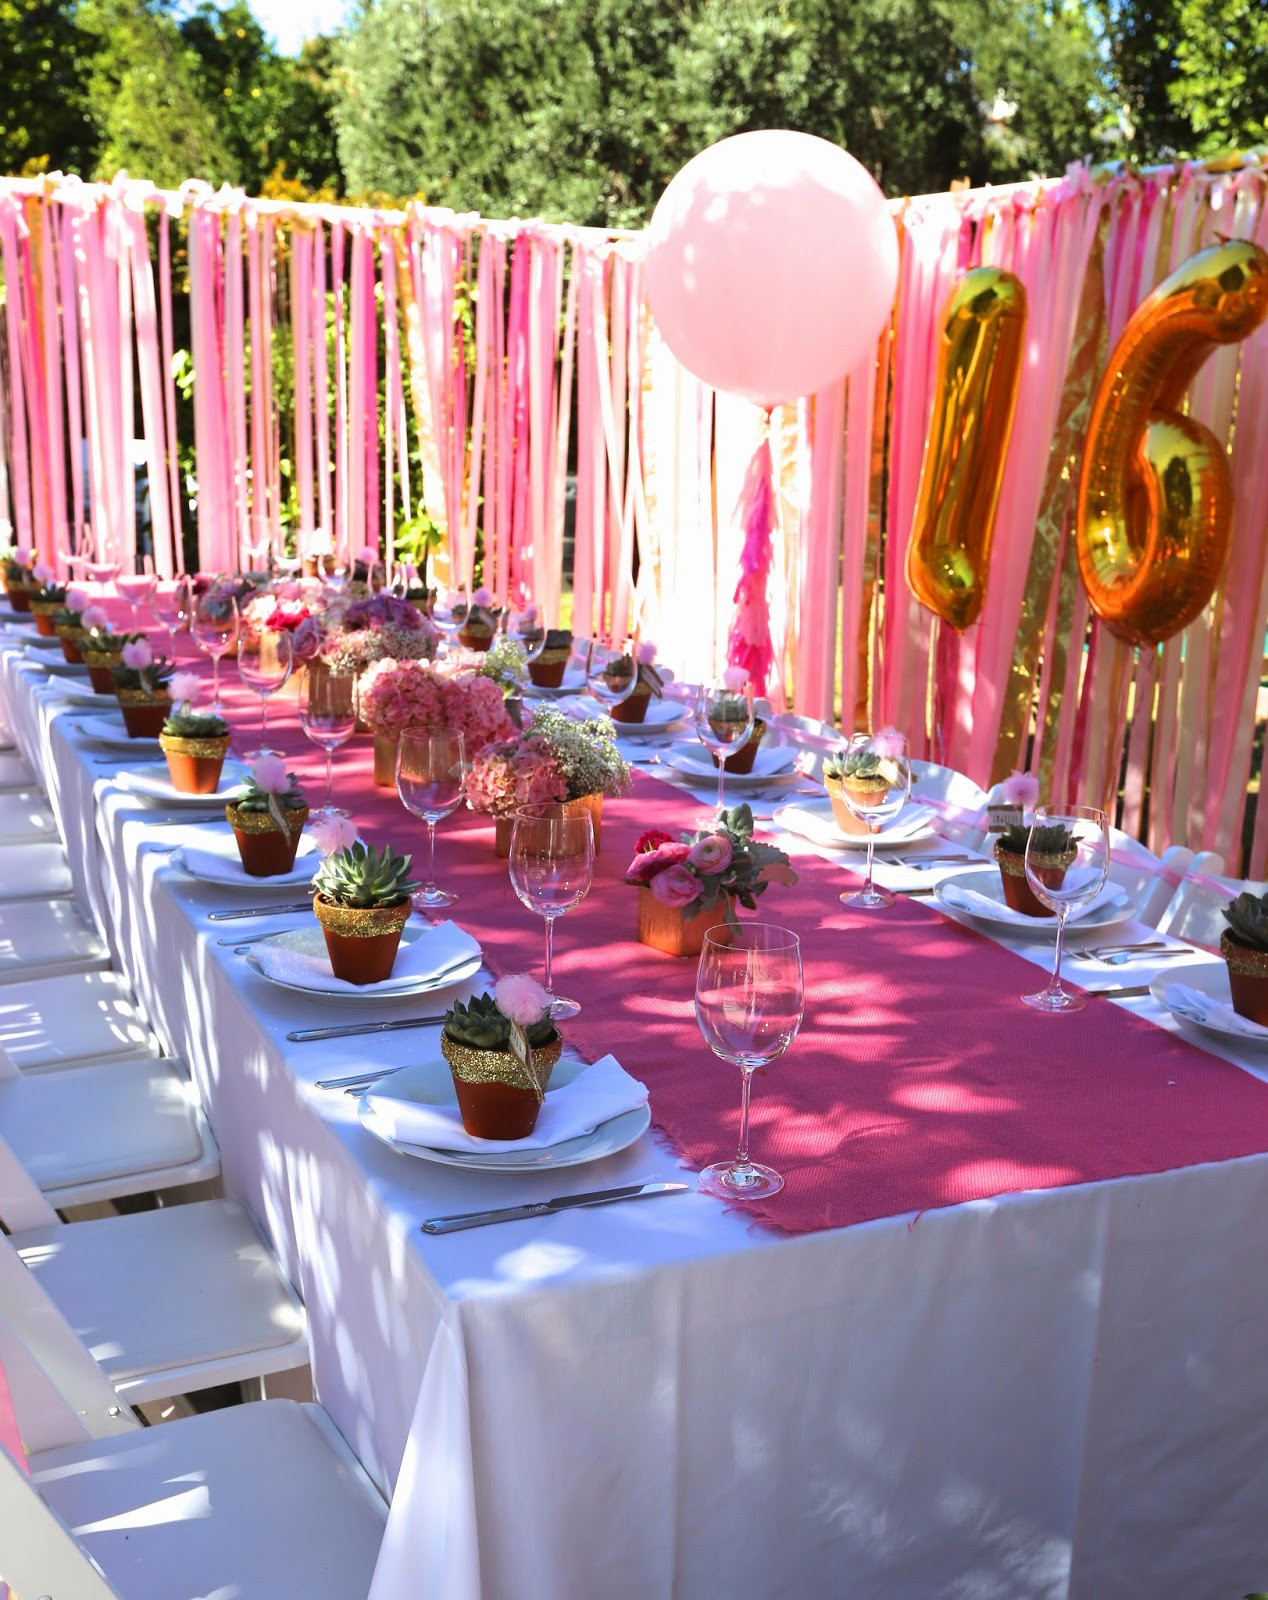 Best ideas about Sweet 16 Birthday Party . Save or Pin the COOP SWEET 16 Party at Home Now.